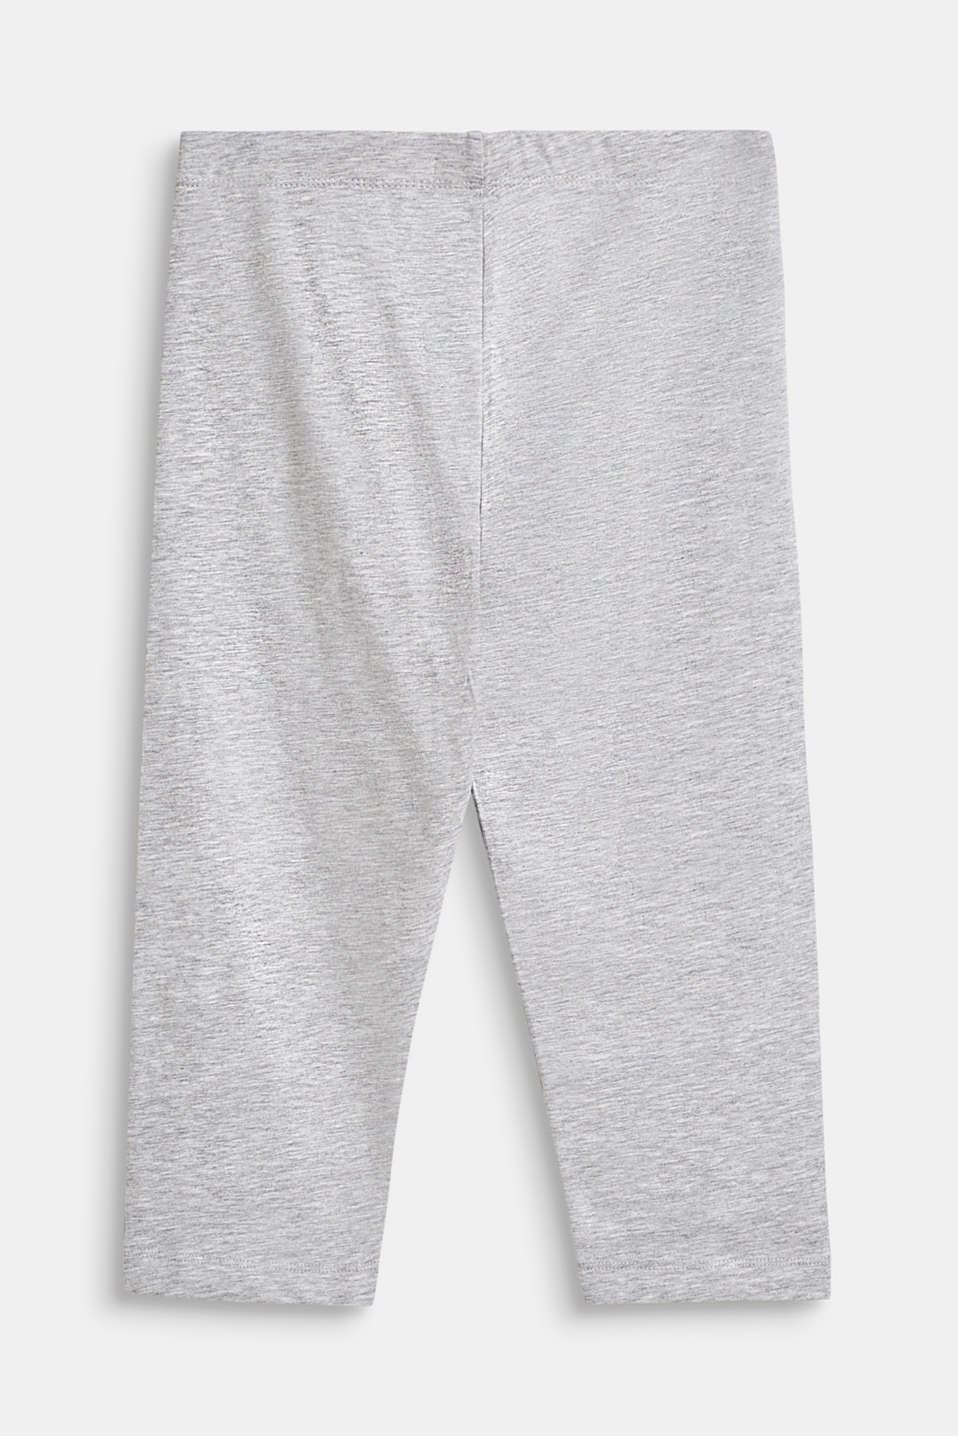 Pants knitted, LCHEATHER SILVER, detail image number 1